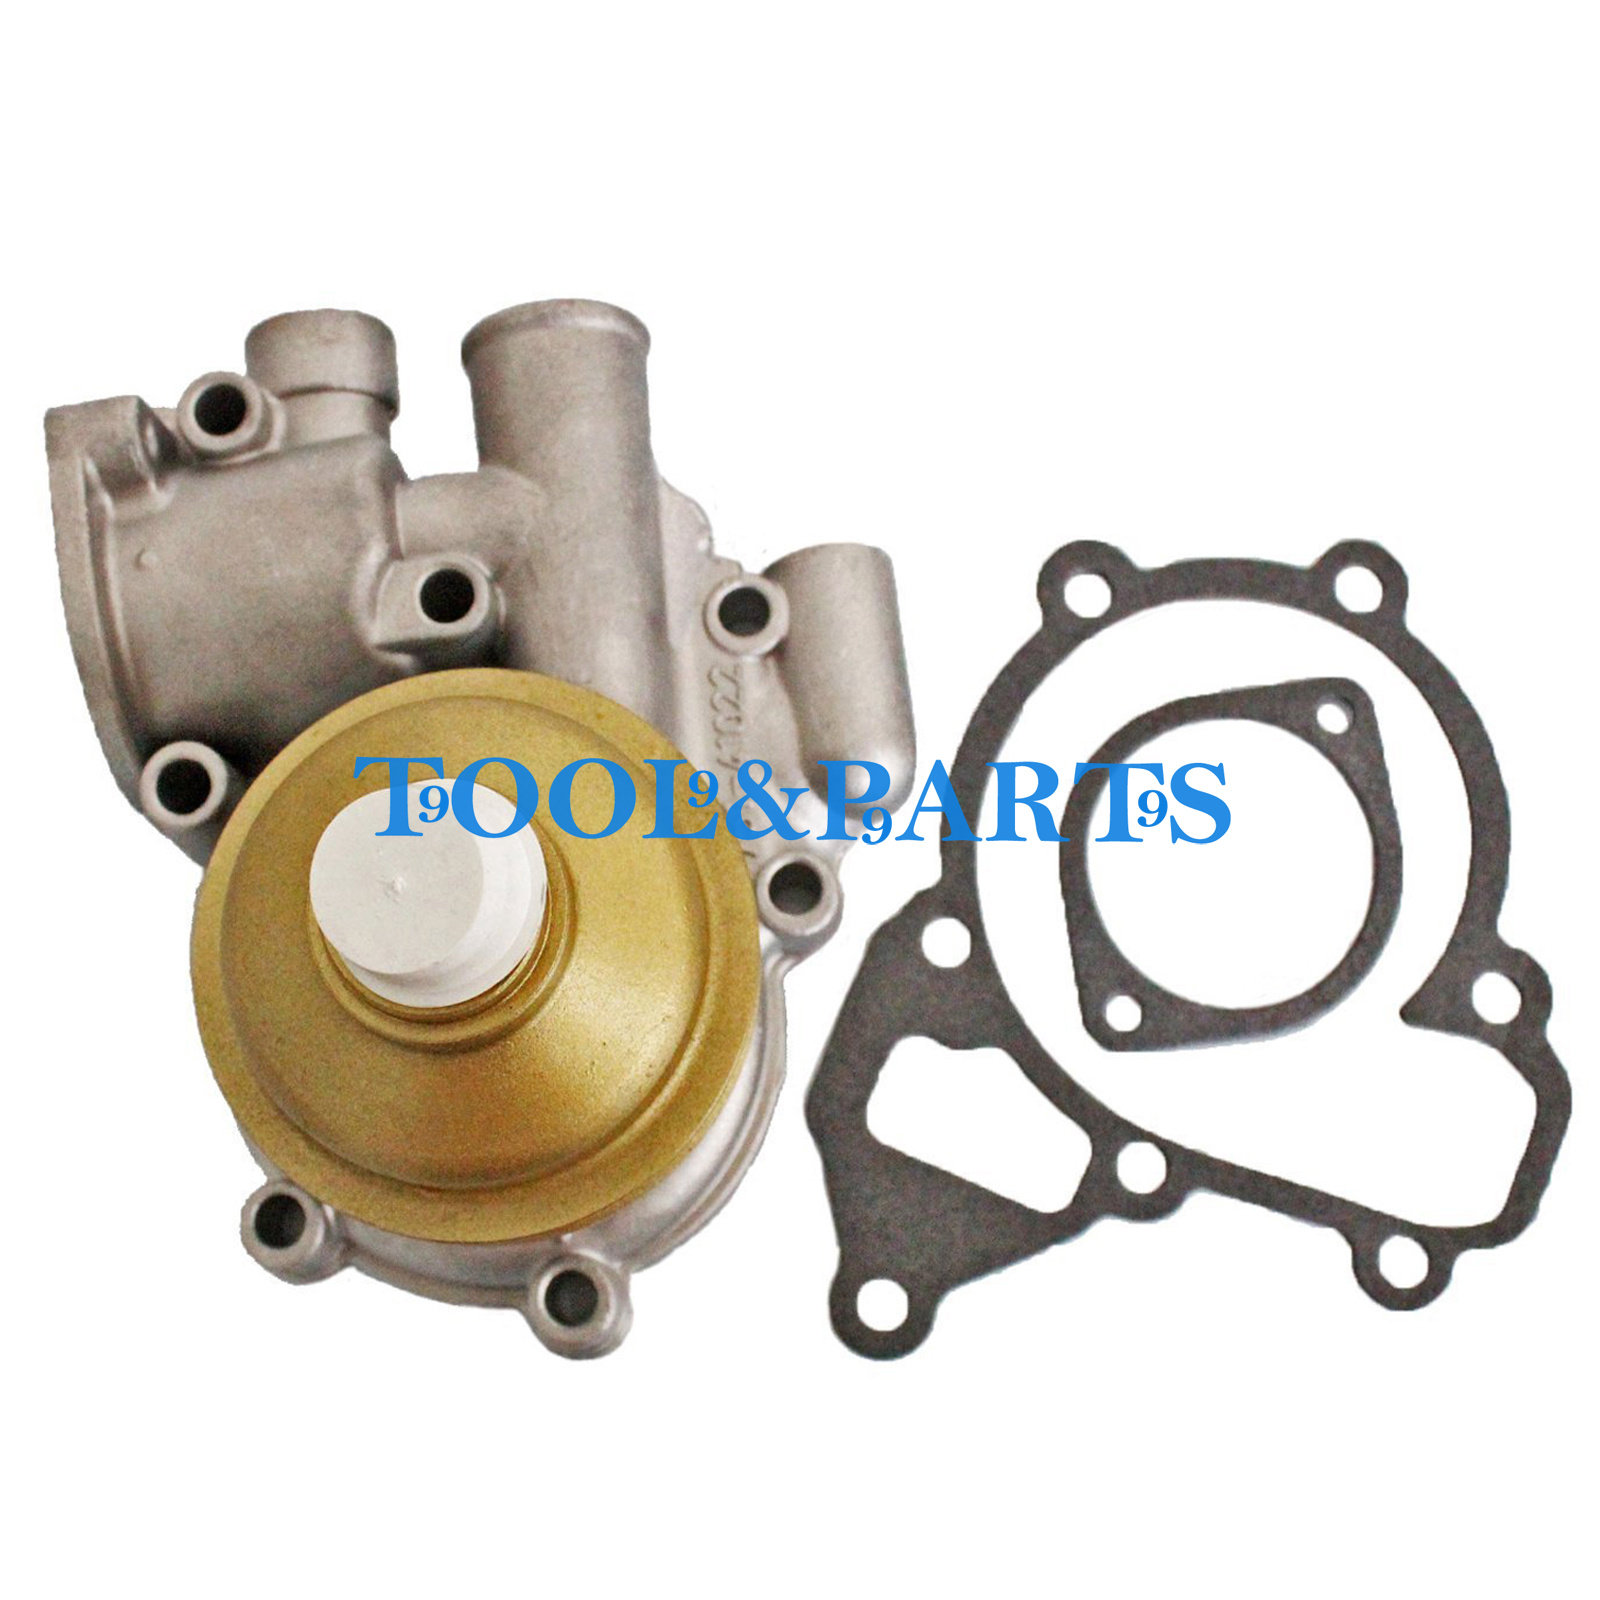 750-40012 750-400011 750-40624 751-41022 NEW Water Pump for Lister Petter